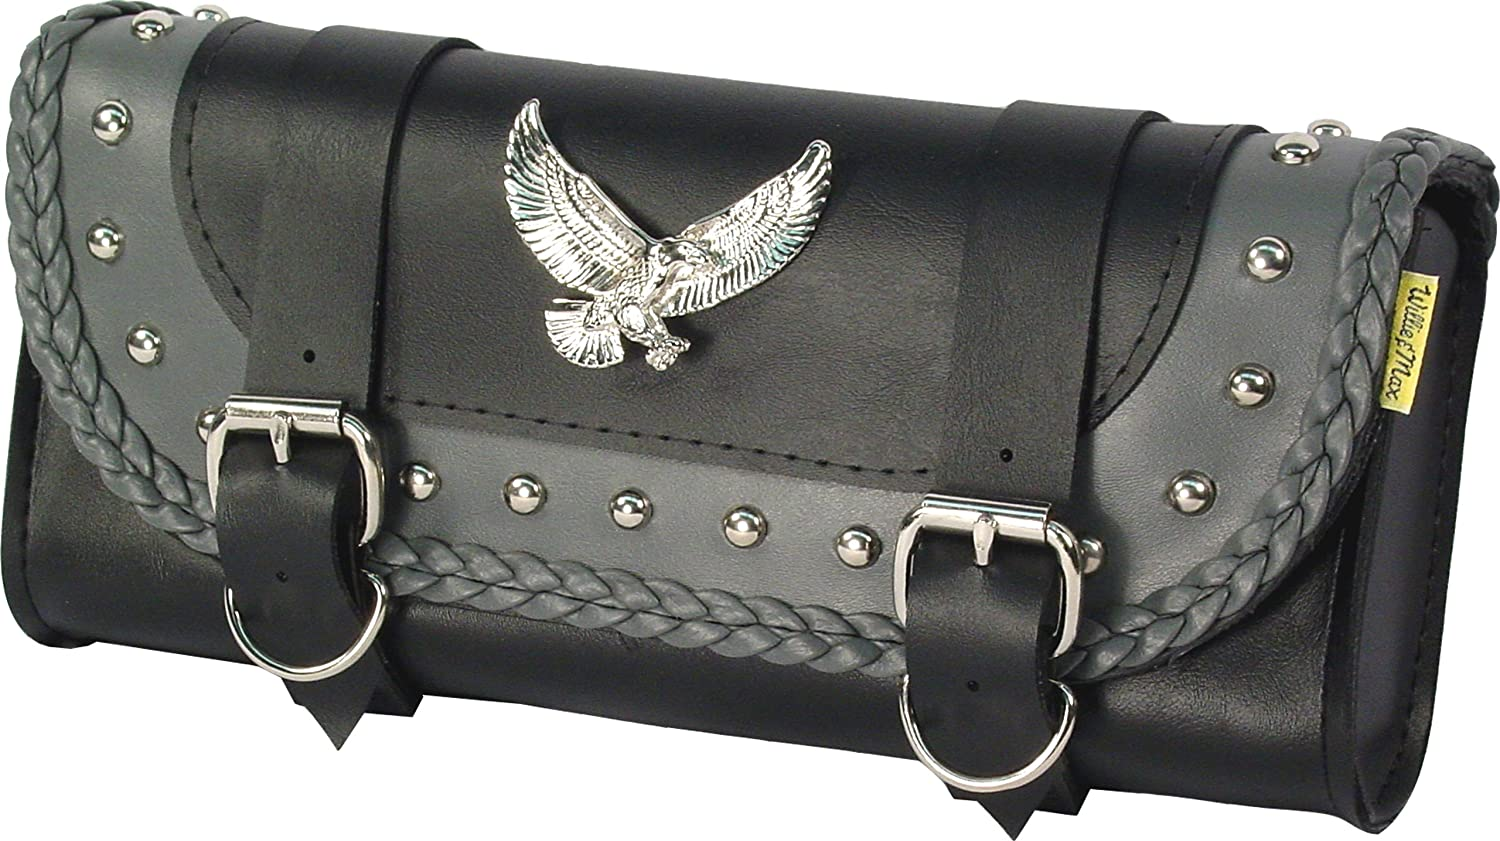 Black and Grey Dowco Willie /& Max 58245-01 Thunder Series Synthetic Leather Studded Motorcycle Tool Pouch Universal Fit